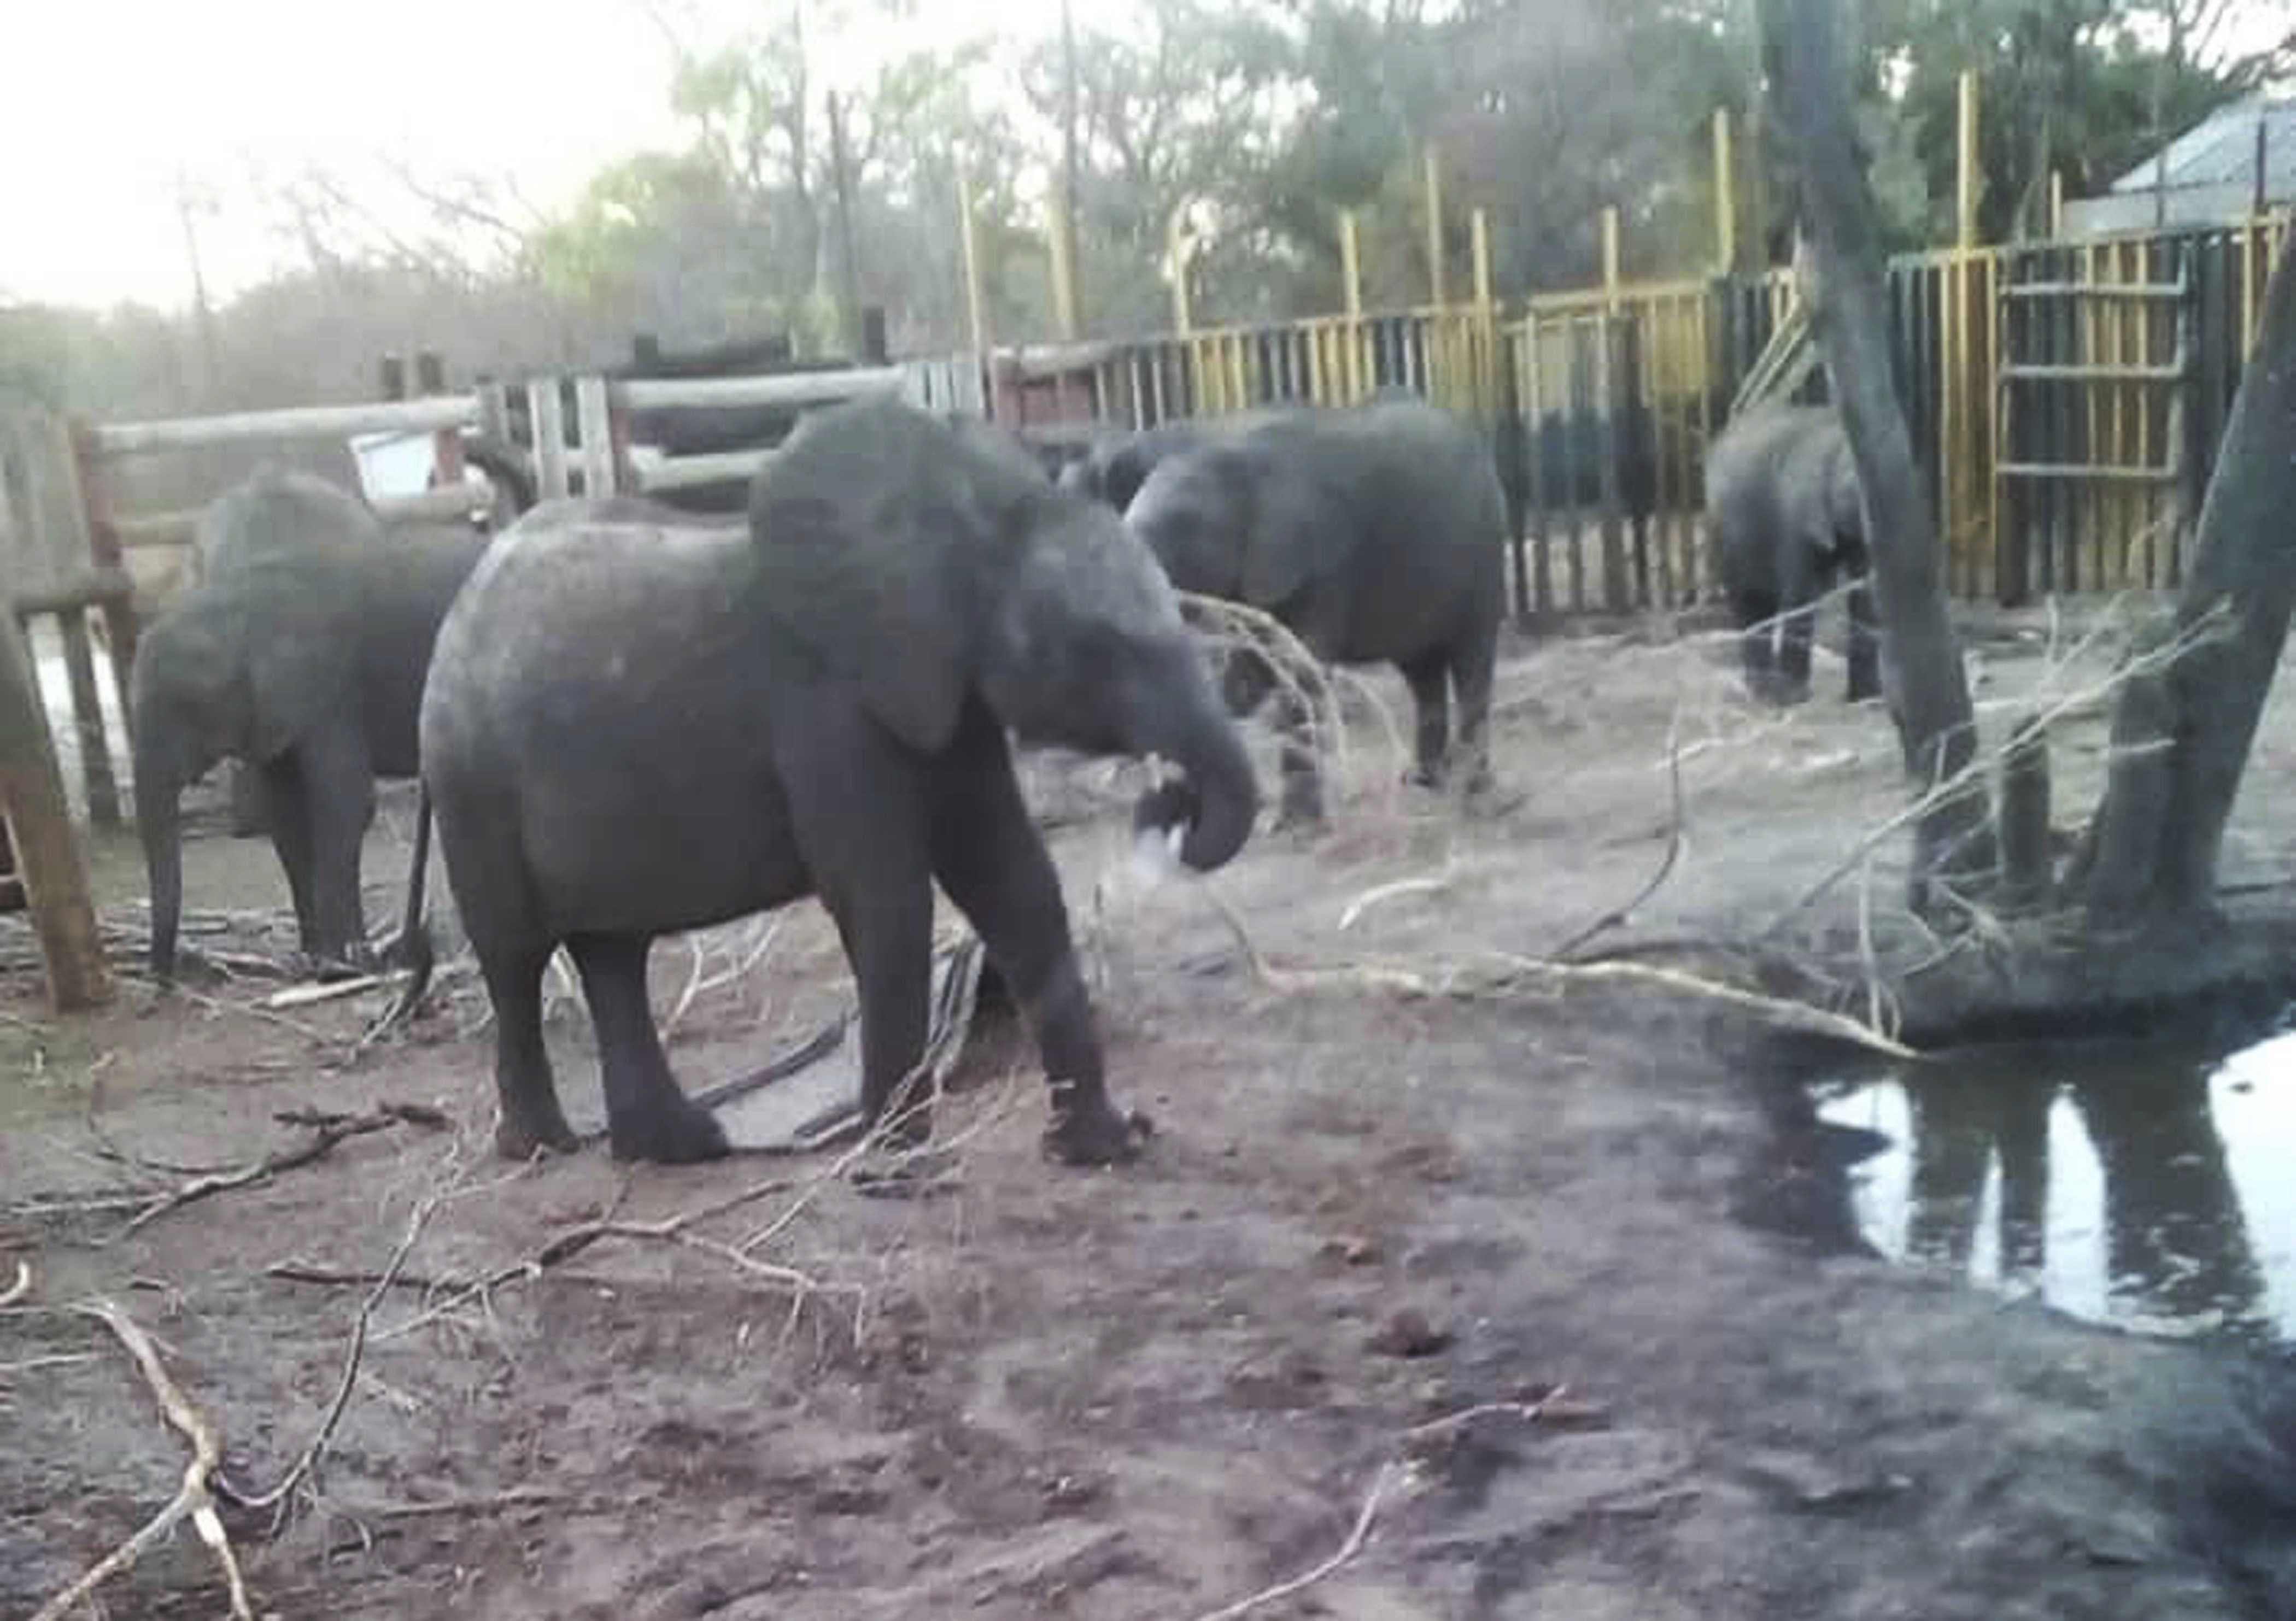 Zimbabwe sent 30 baby elephants to China, says rights group